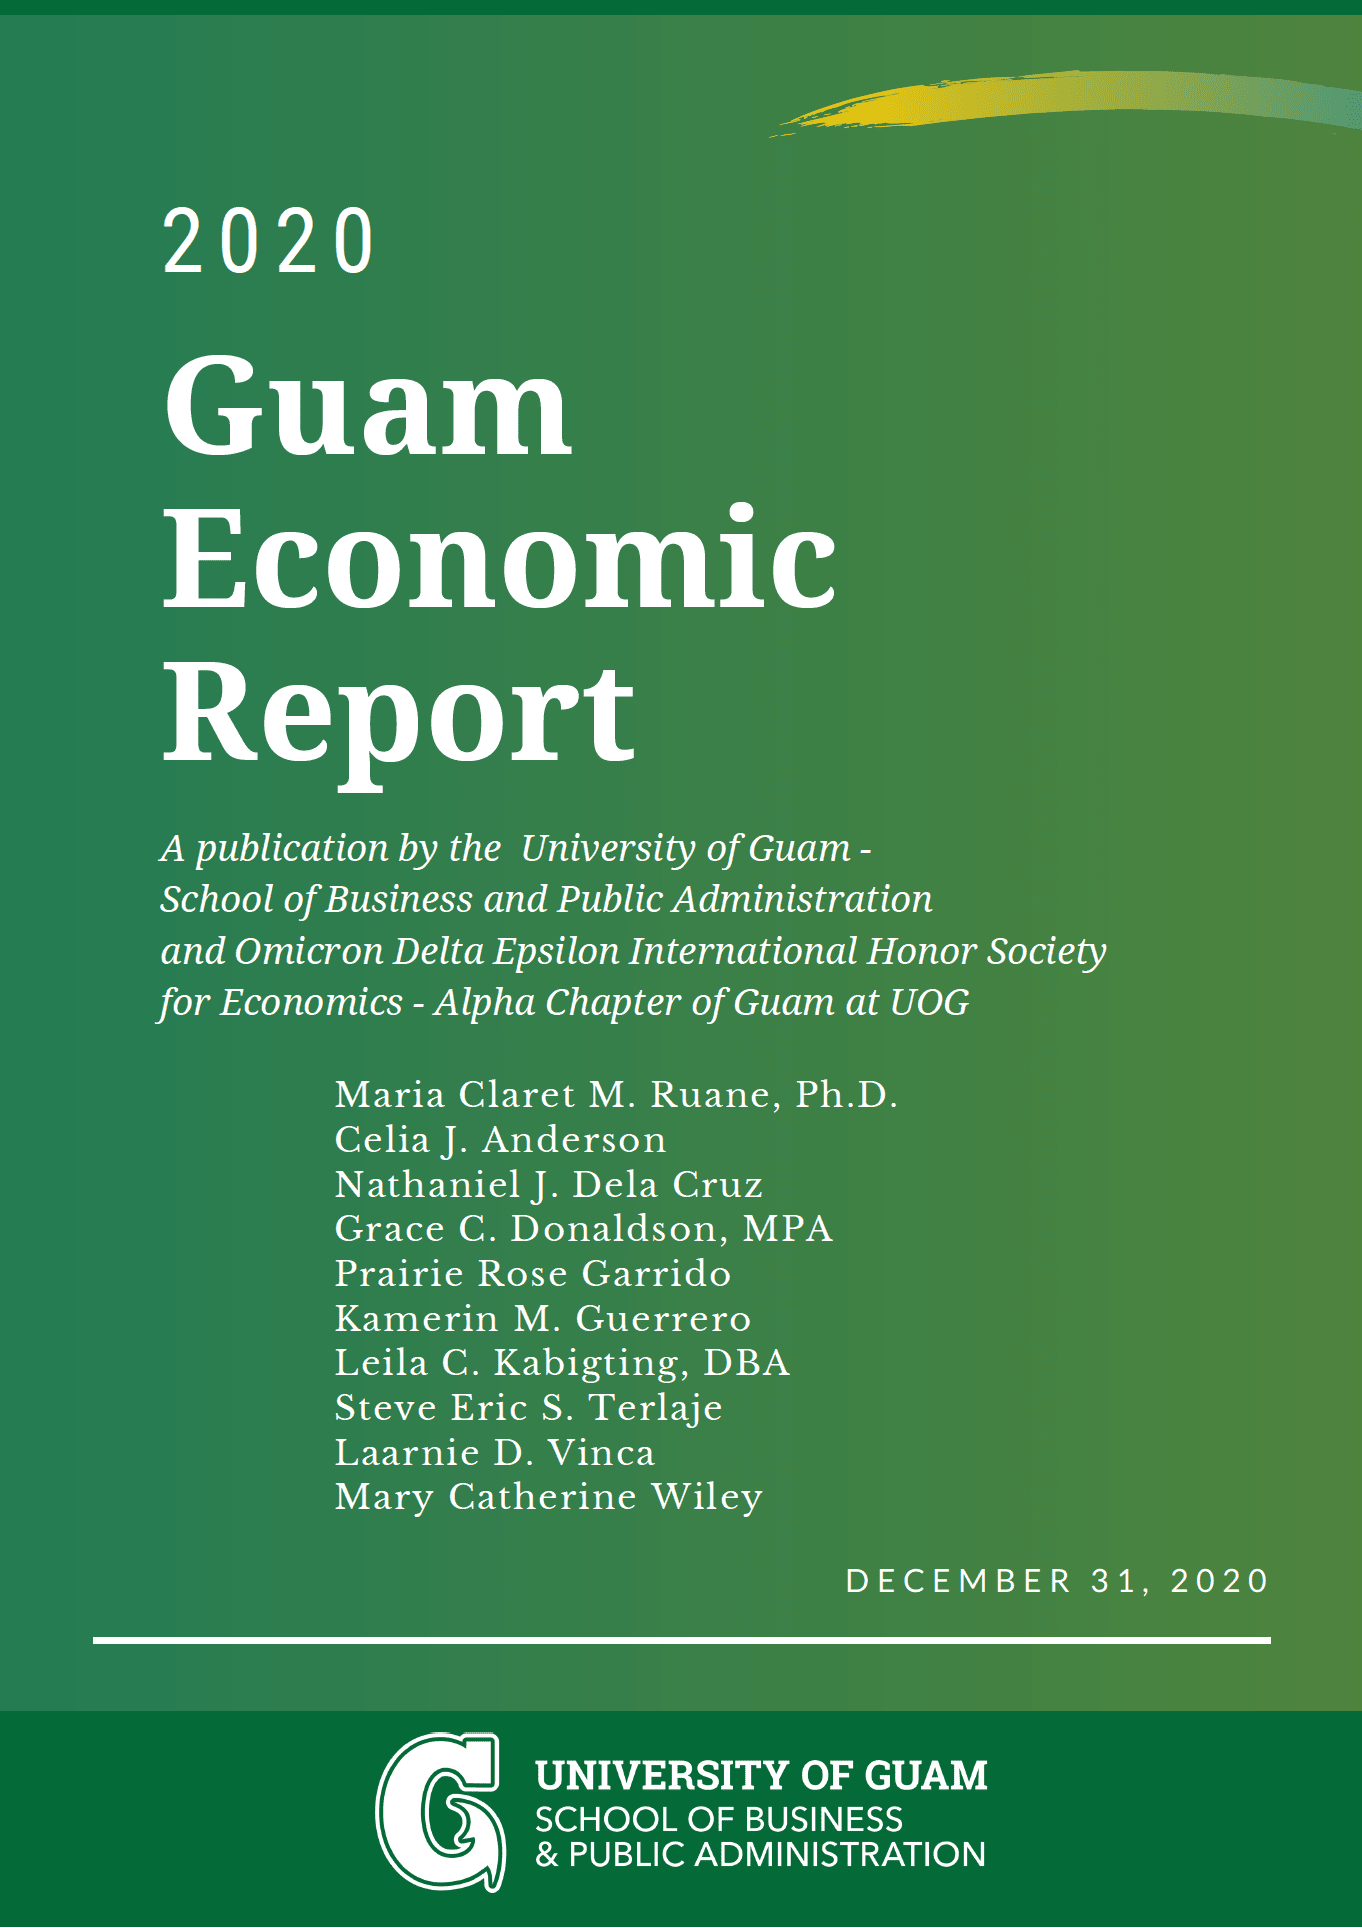 Photo of the Report Cover